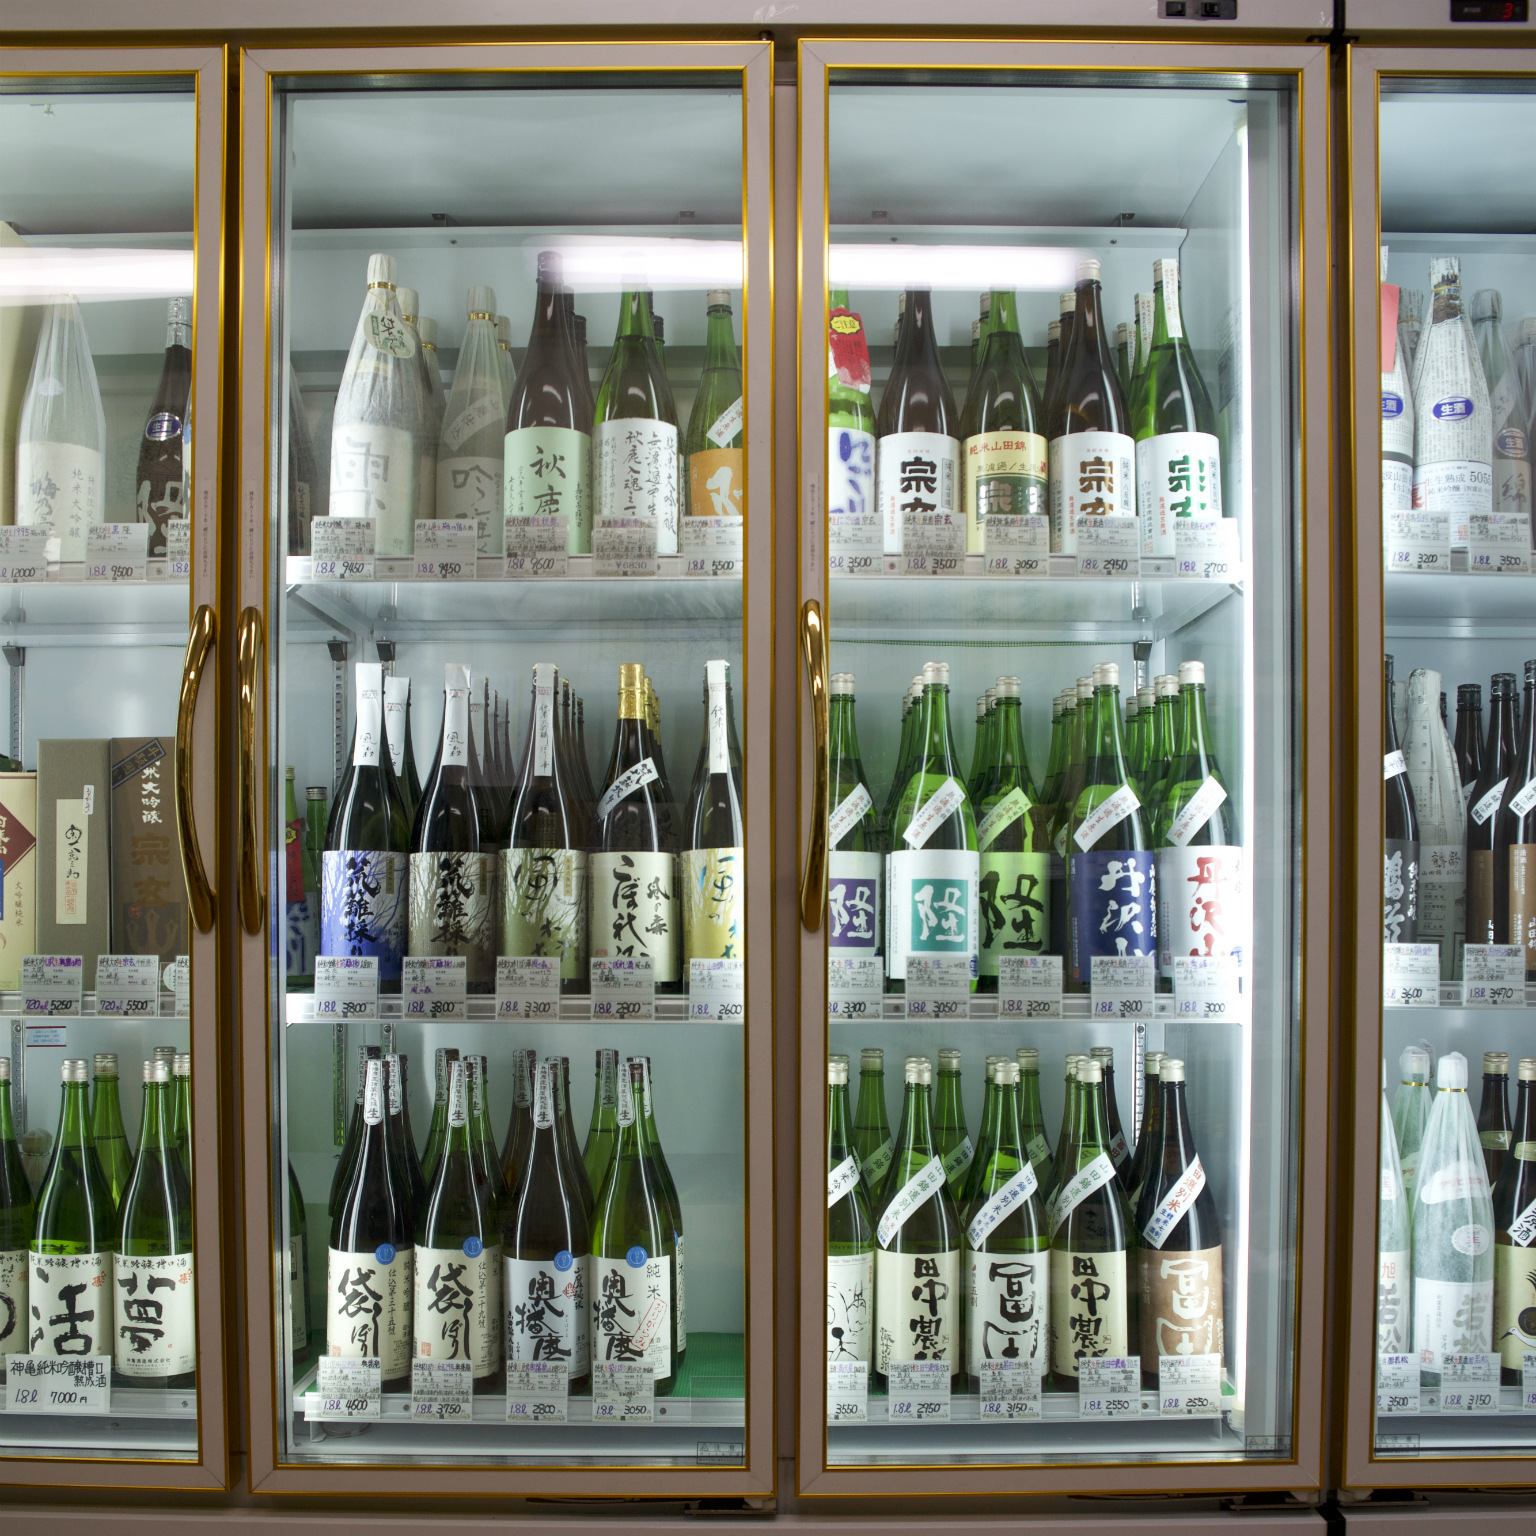 Tiny sake specialist with a rare selection and unorthodox attitude